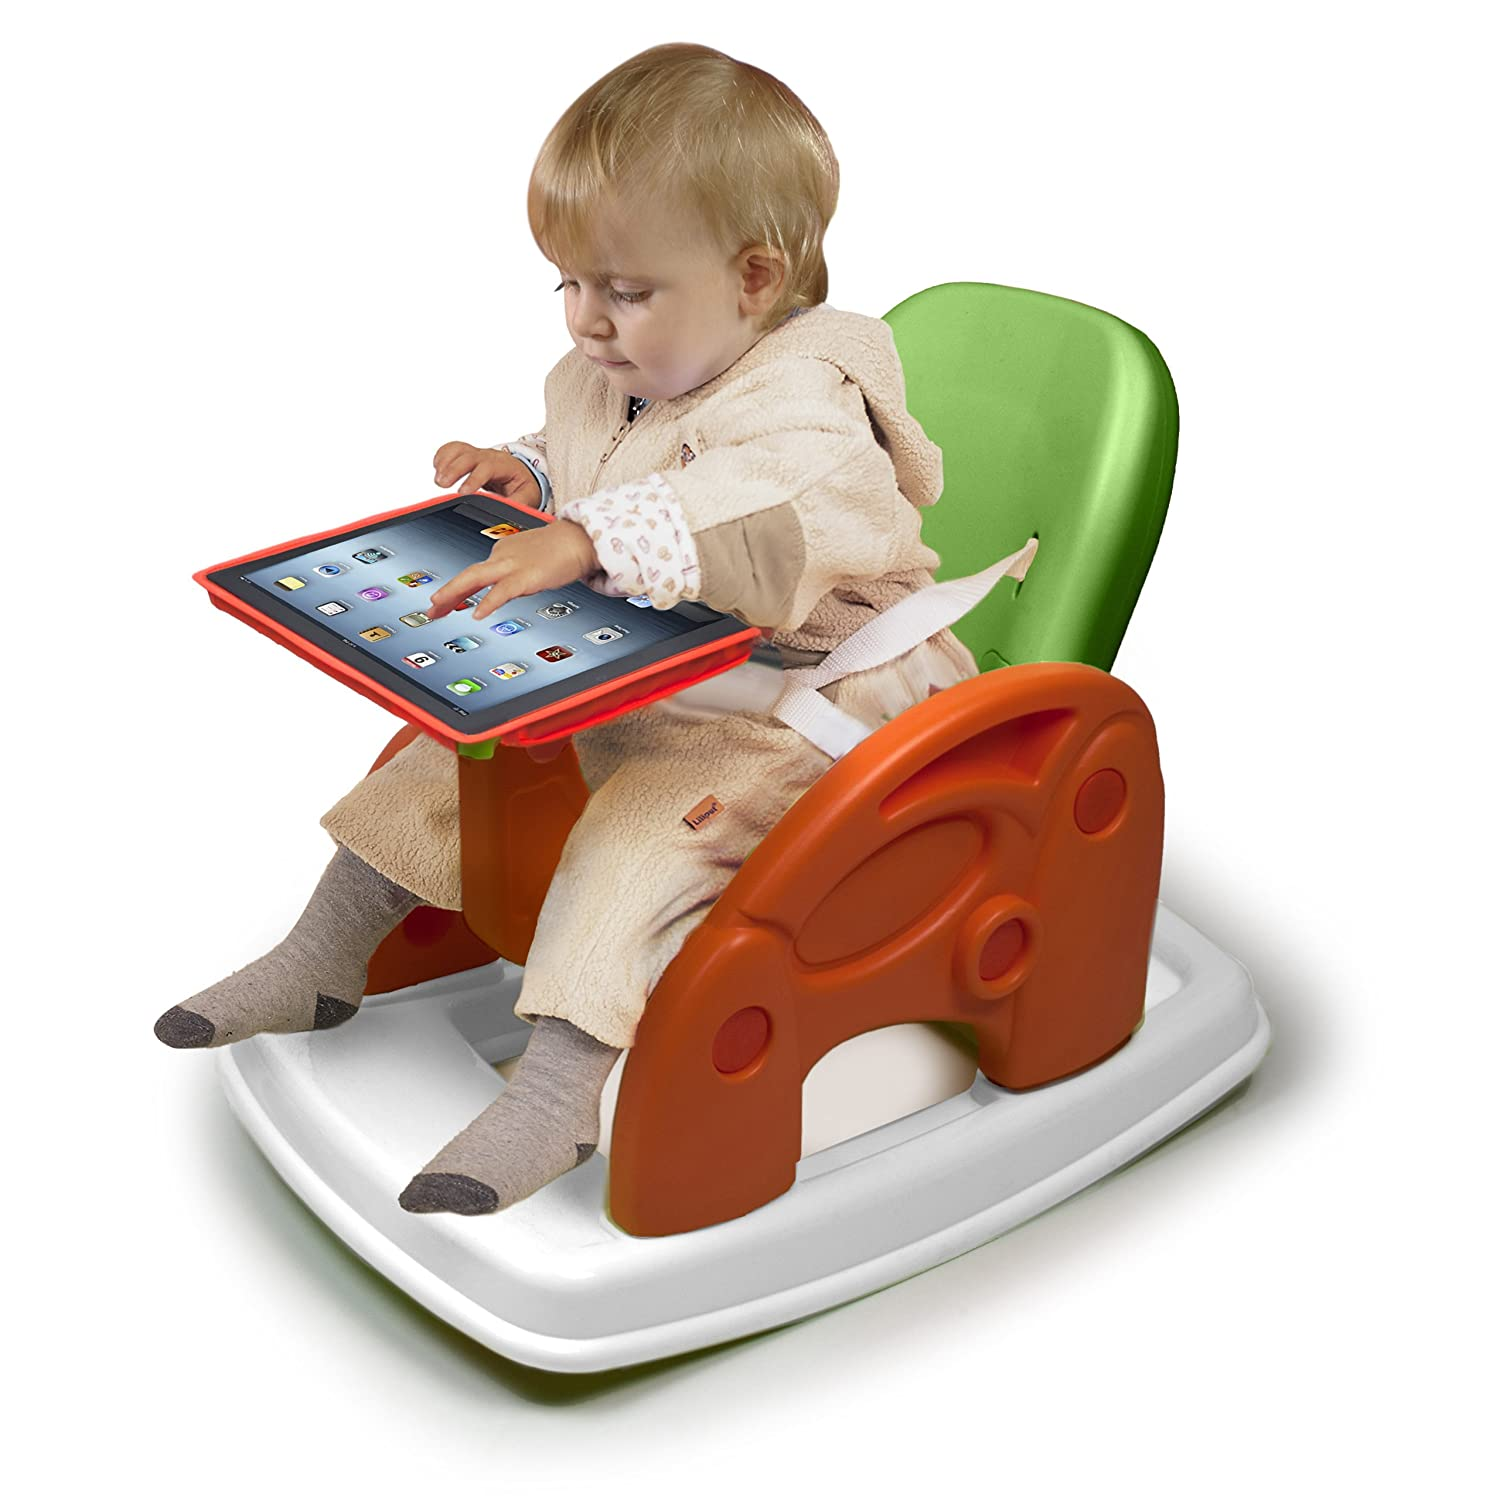 Amazon CTA Digital iRocking Play Seat for iPad with Feeding